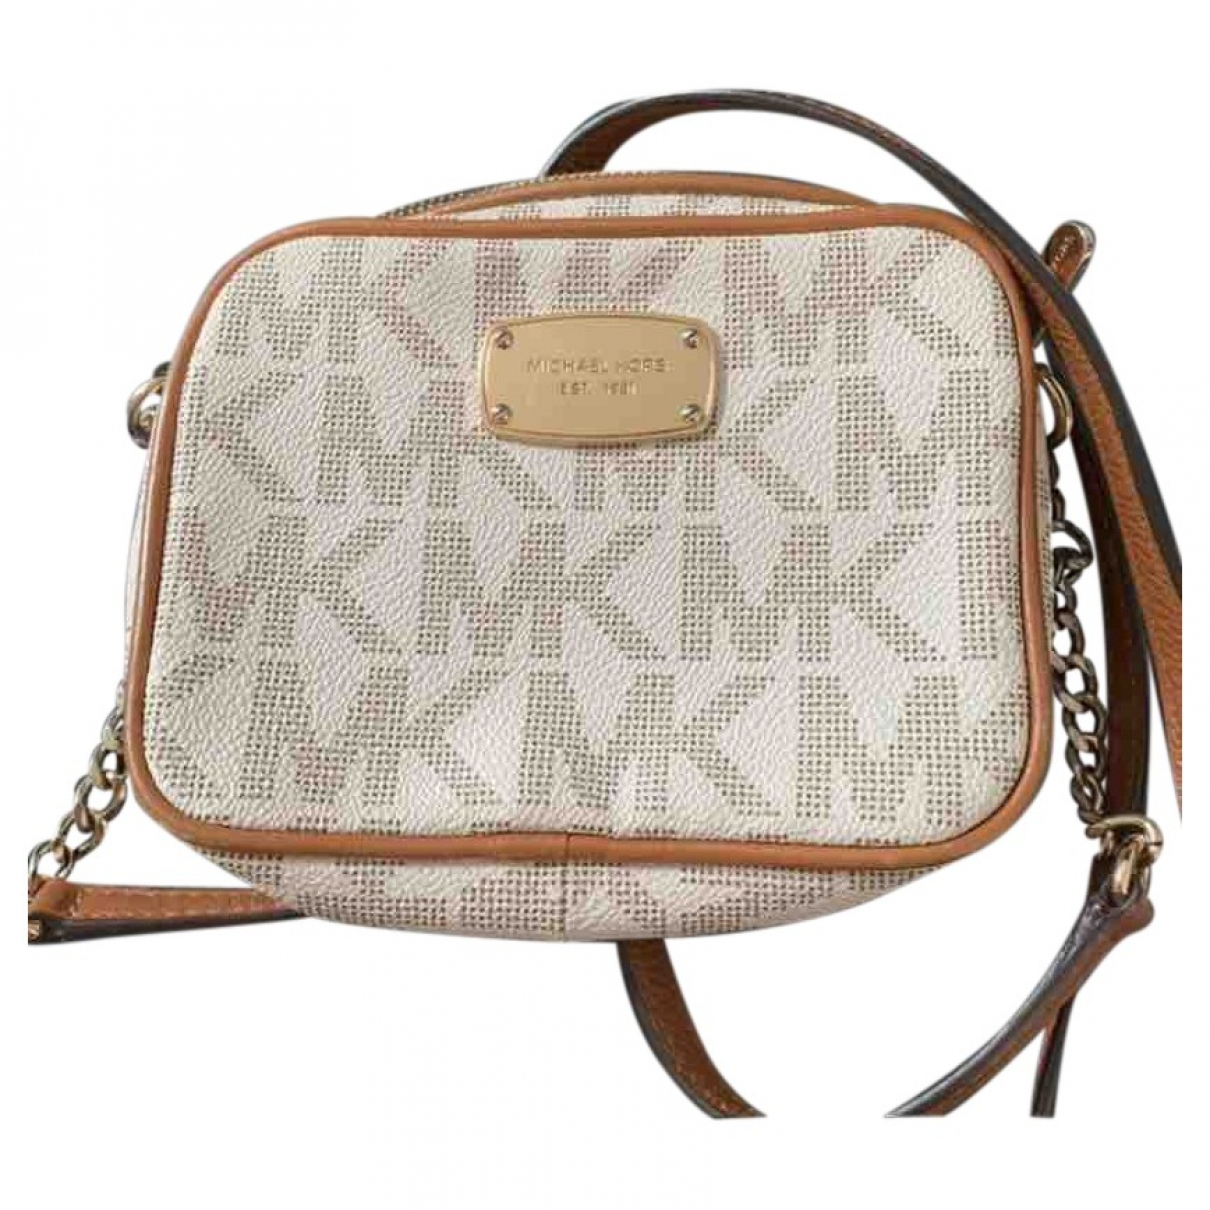 Michael Kors \N Beige Leather handbag for Women \N